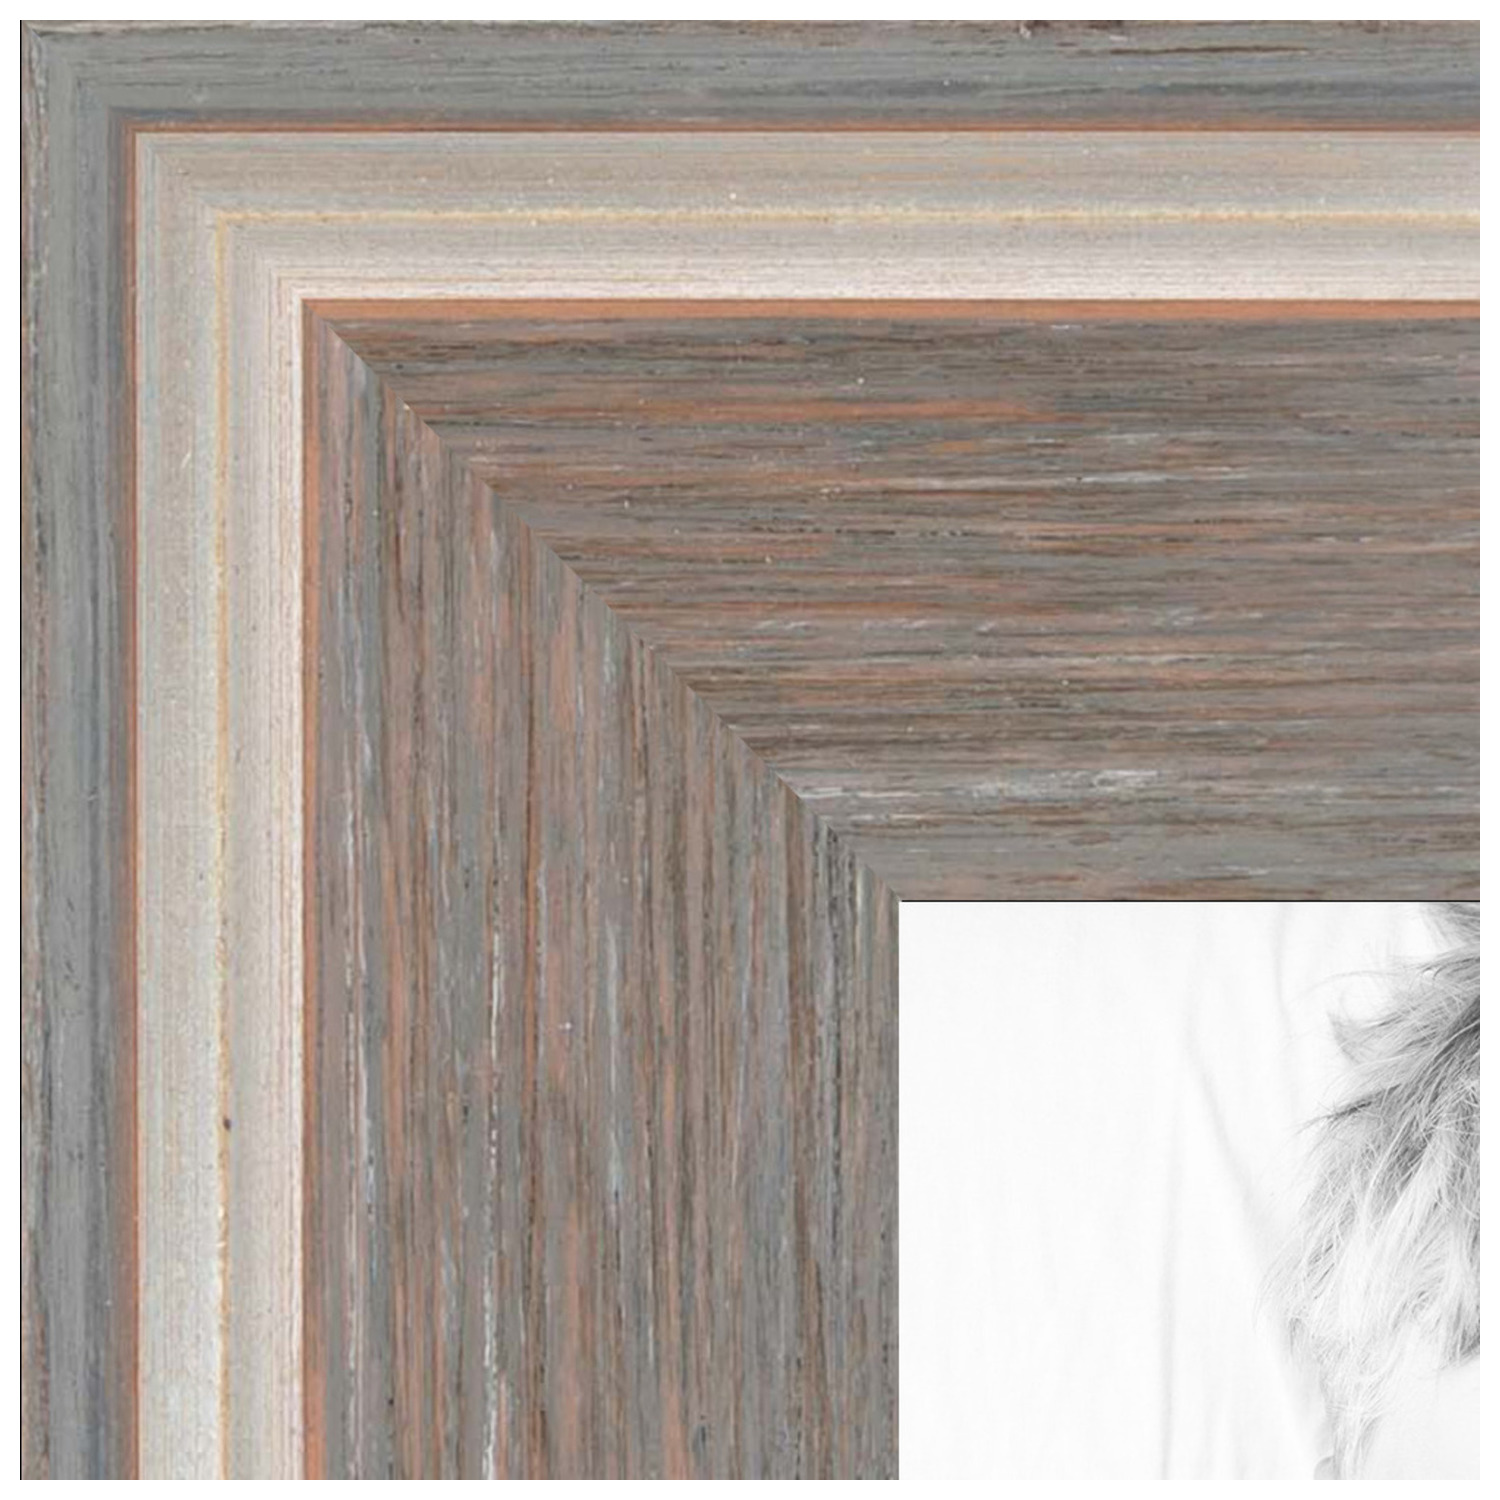 arttoframes 16x16 inch grey picture frame this gray wood poster frame is great for your art or photos comes with 060 plexi glass 4929